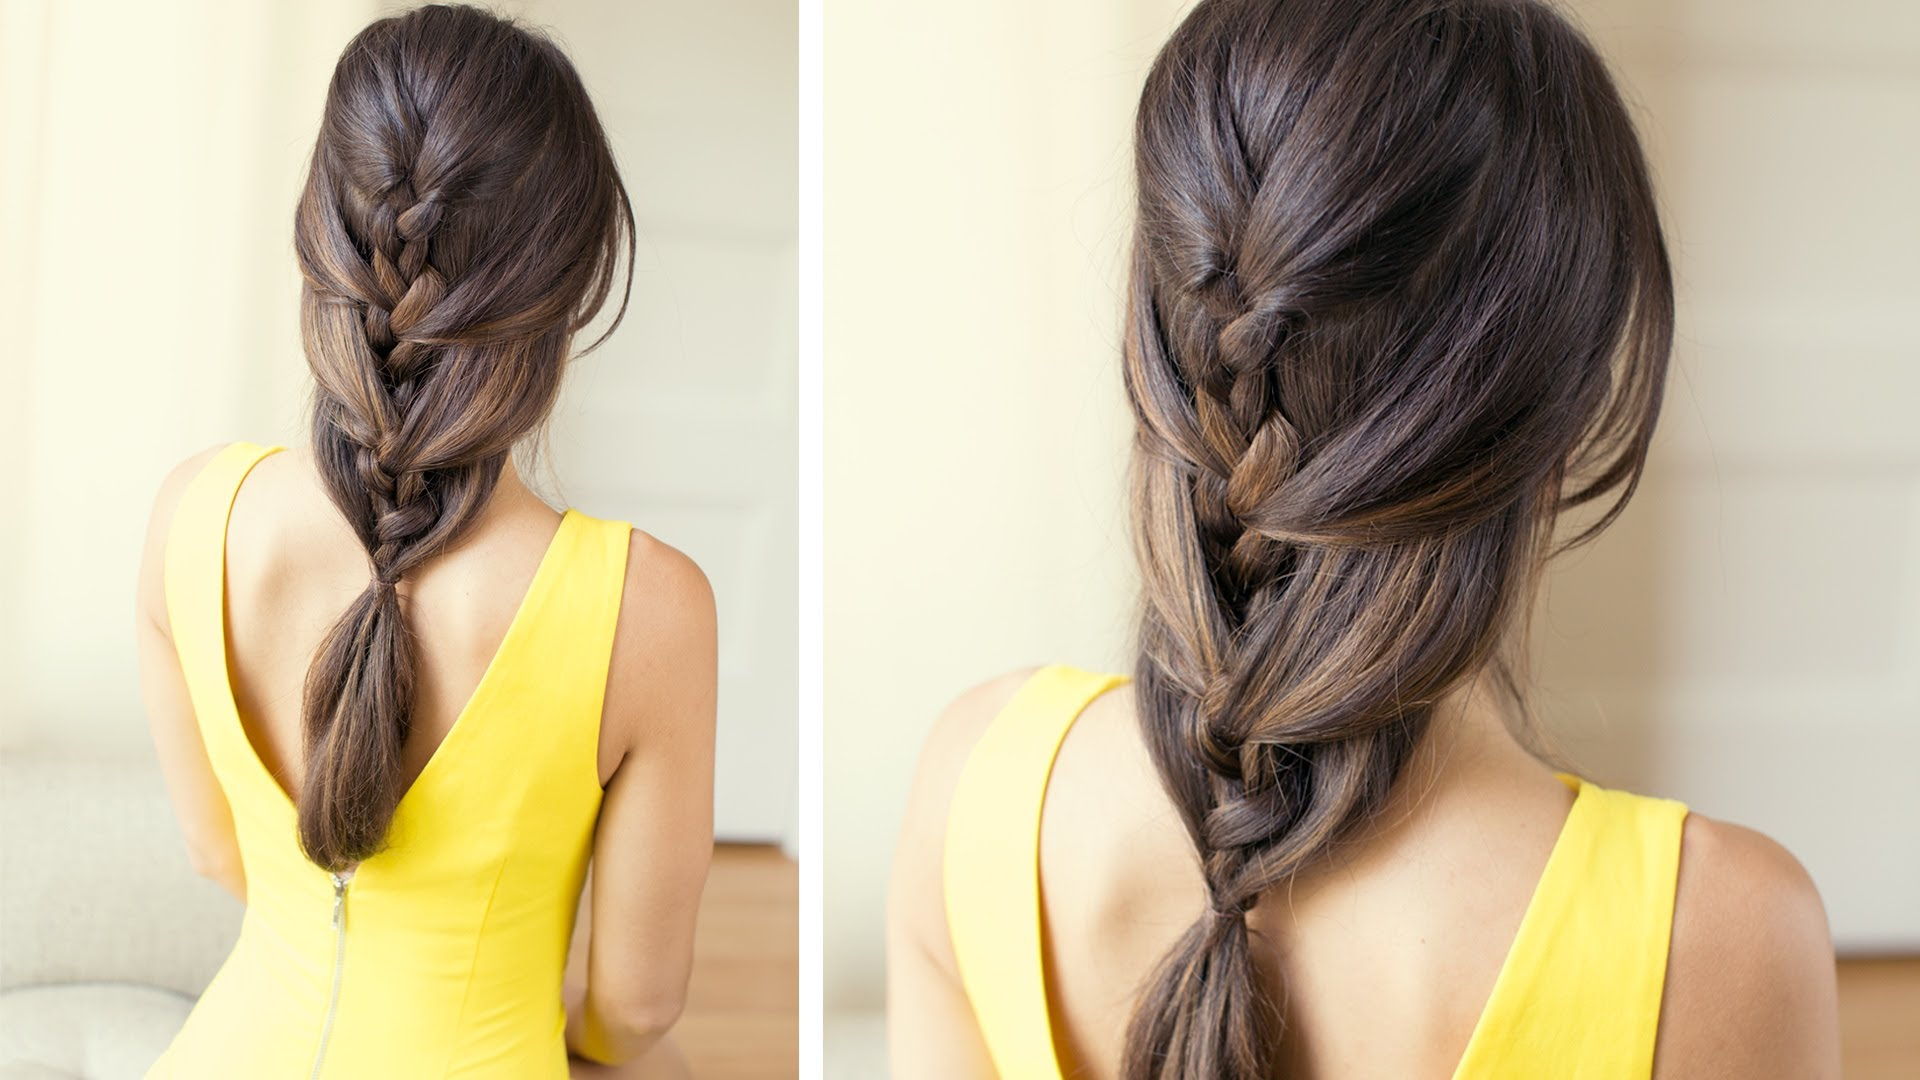 French Braid Steps For Beginners – Video Tutorial